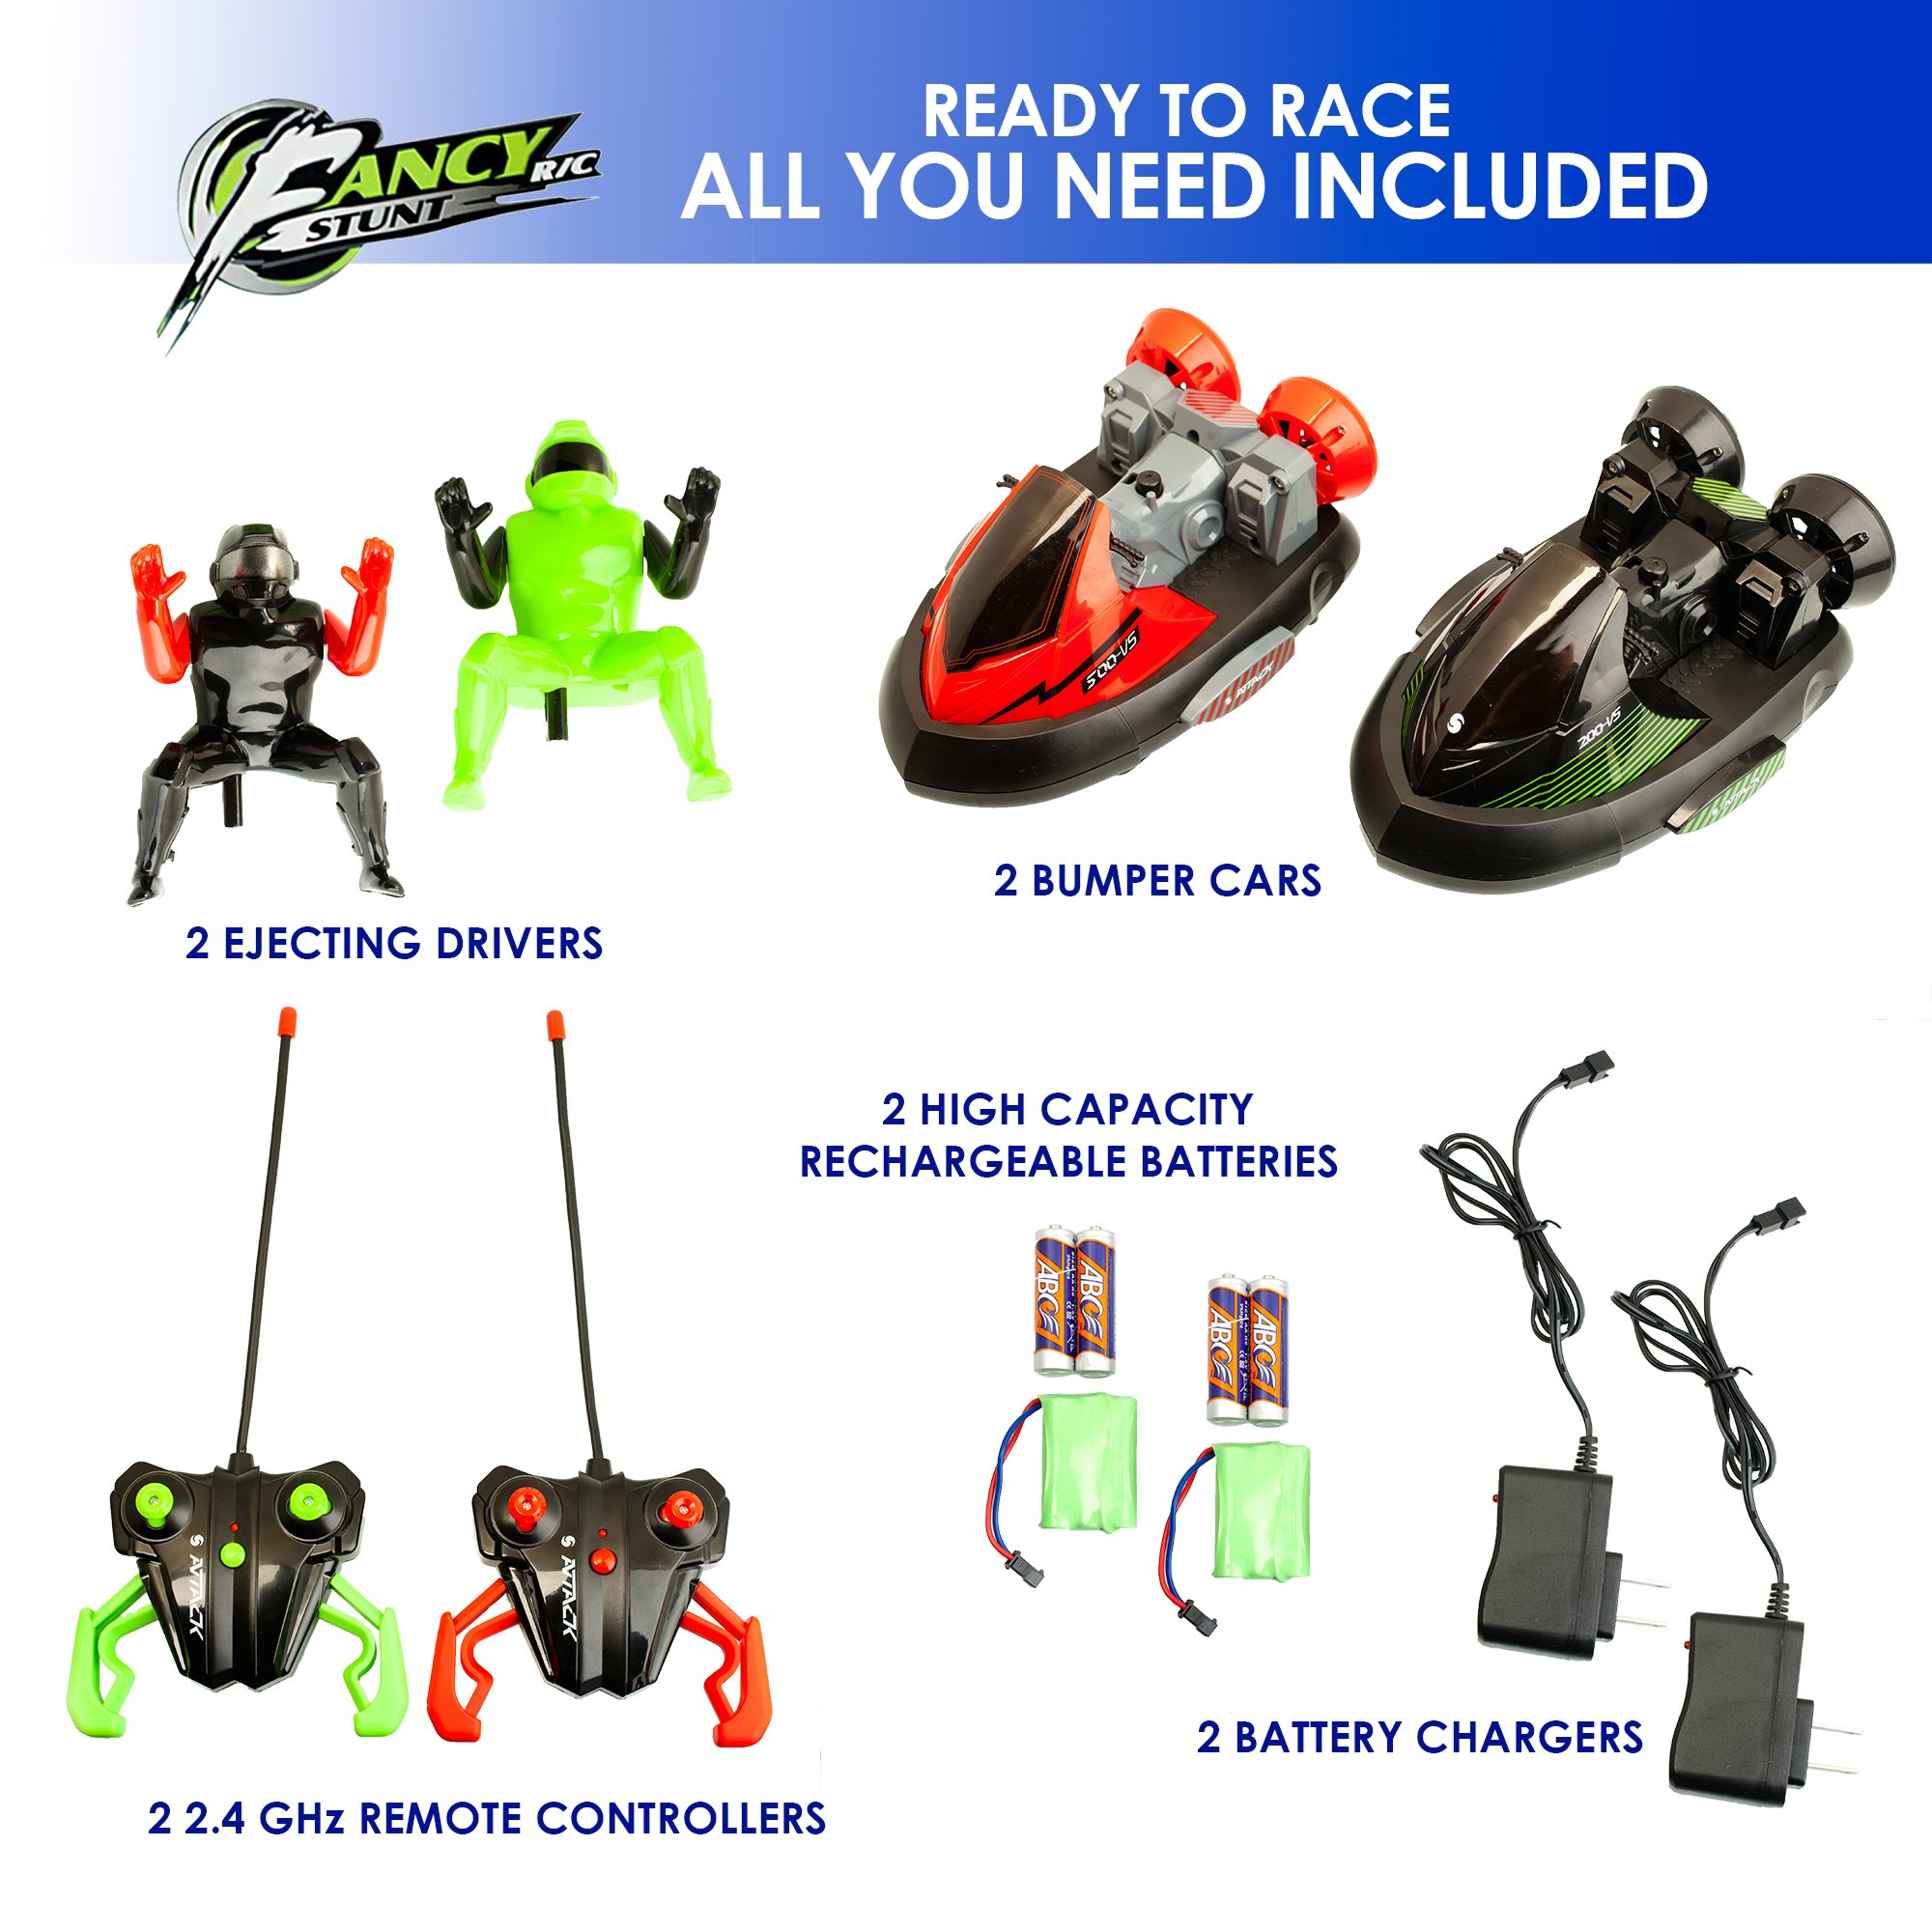 ToyThrill 2 Pack Remote Control Bumper Cars – Two Player Stunt RC Toy with Ejectable Drivers and Crash Sounds - Batteries and Adapter Included – Green and Red by ToyThrill (Image #2)